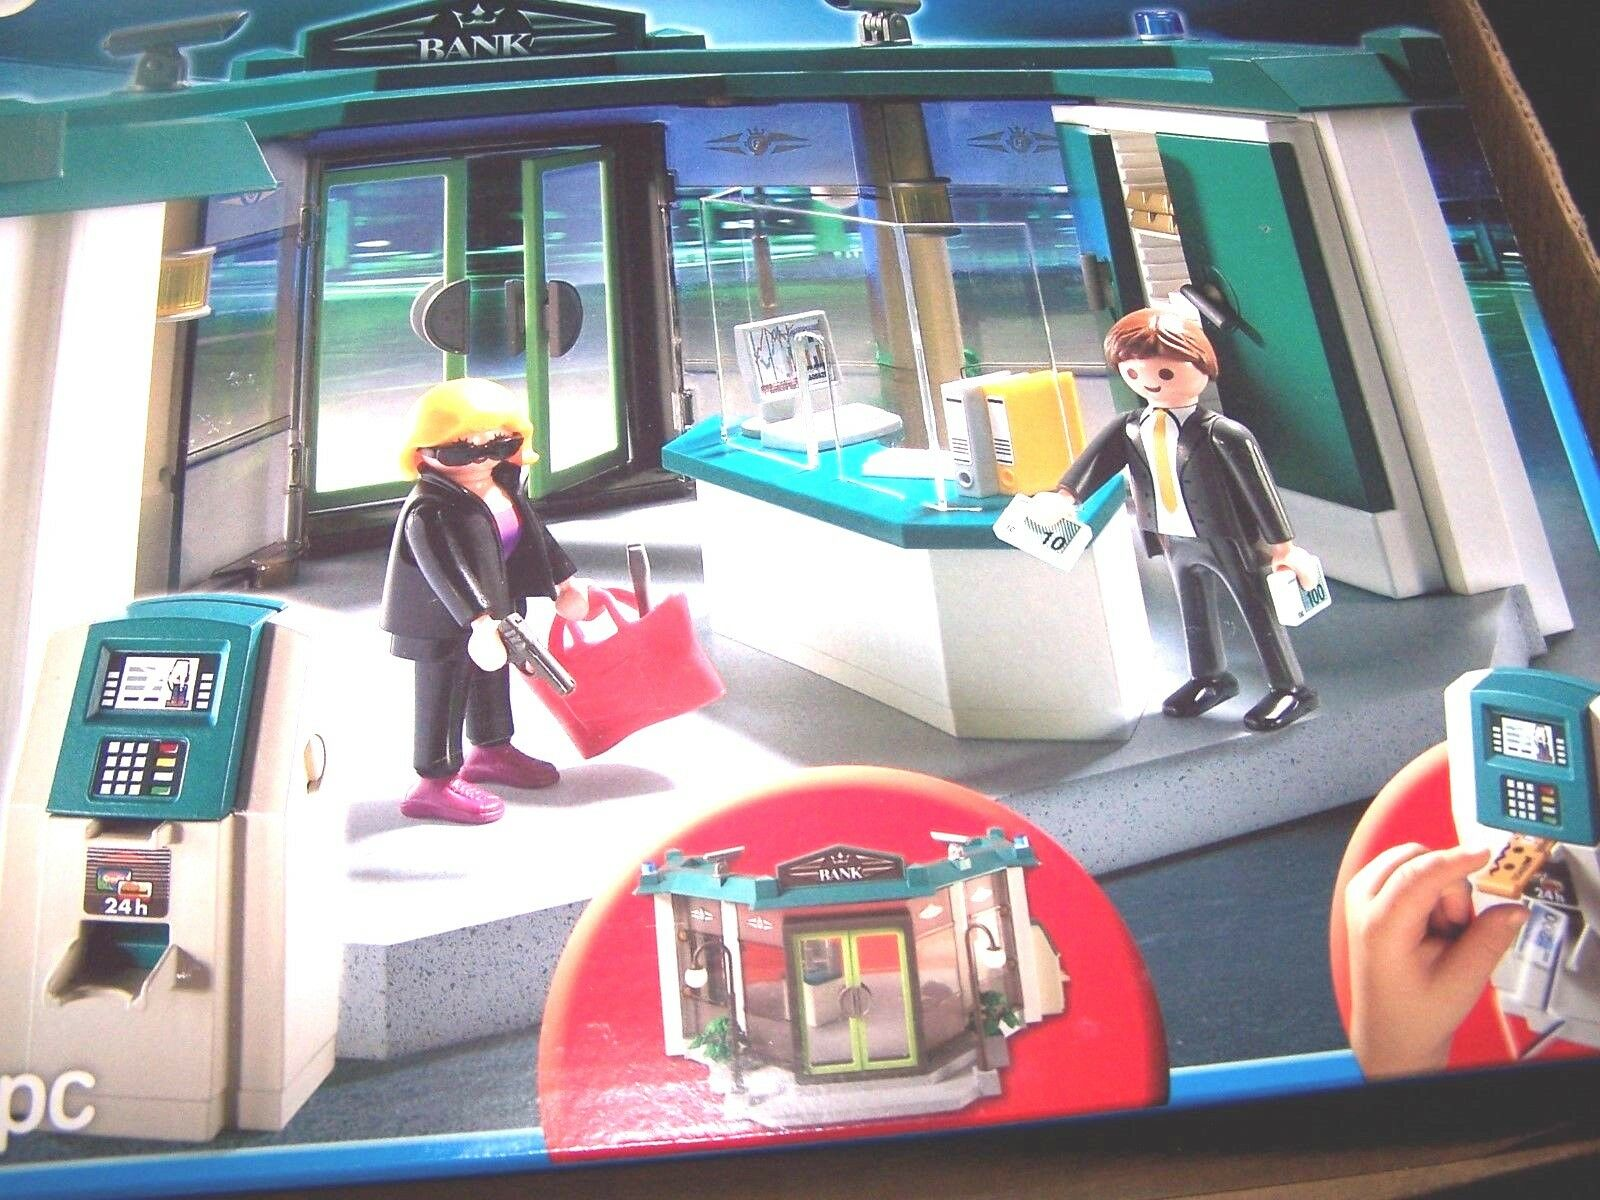 NEW NIB Sealed Playmobil Playmobil Playmobil 5177 Bank with Safe and gold Bars Money ATM aafcae